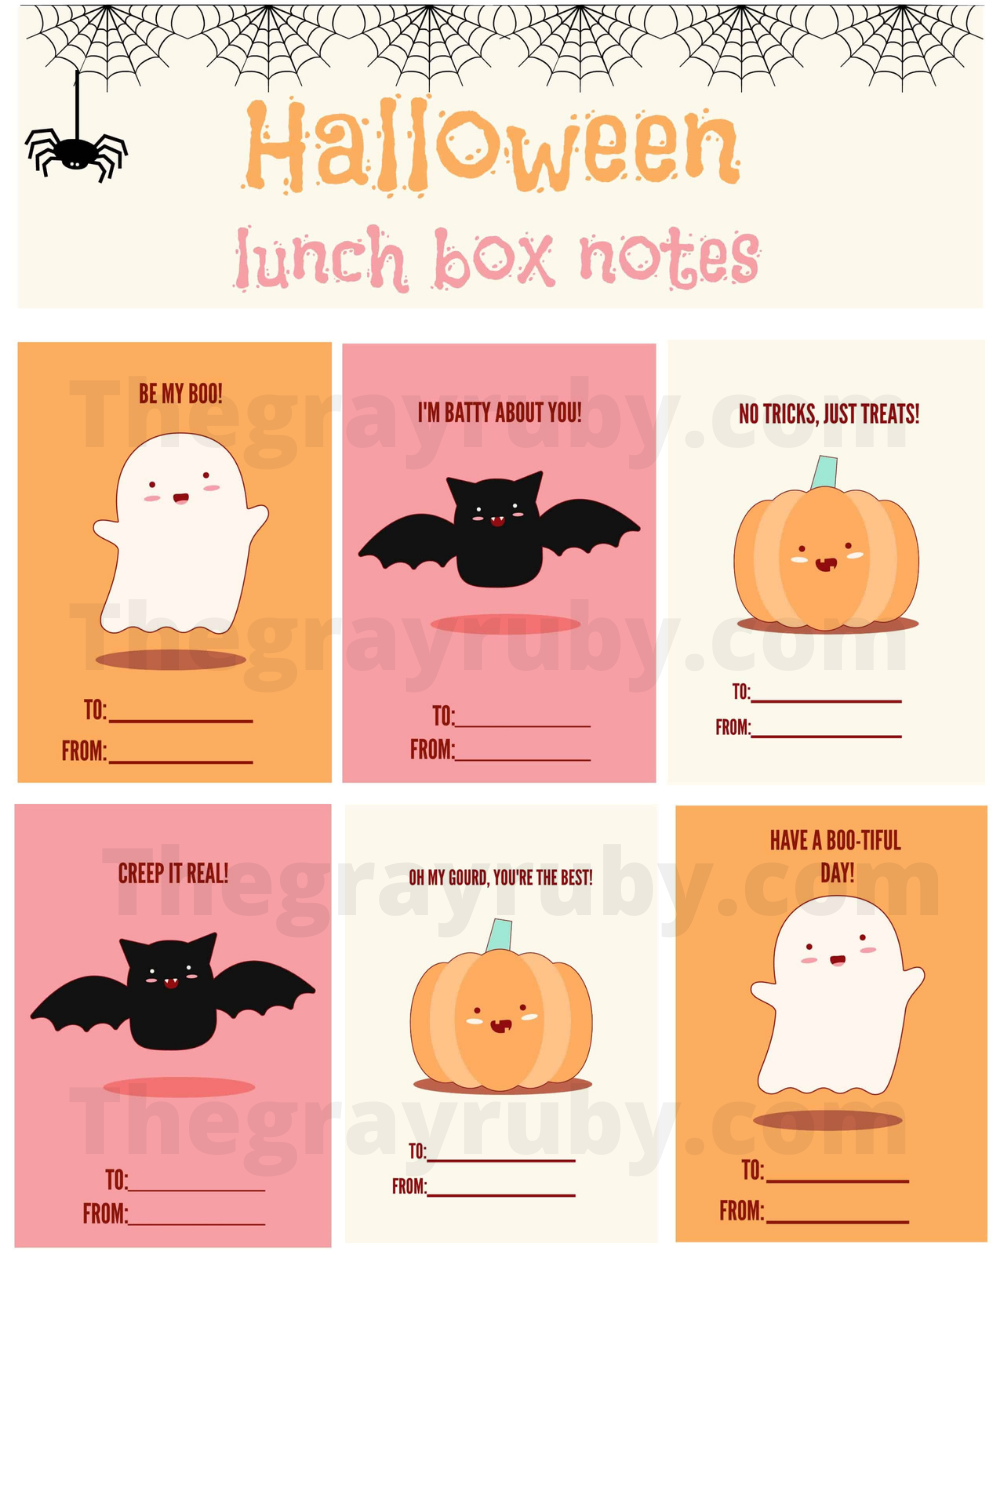 Free Halloween Lunch box notes printable